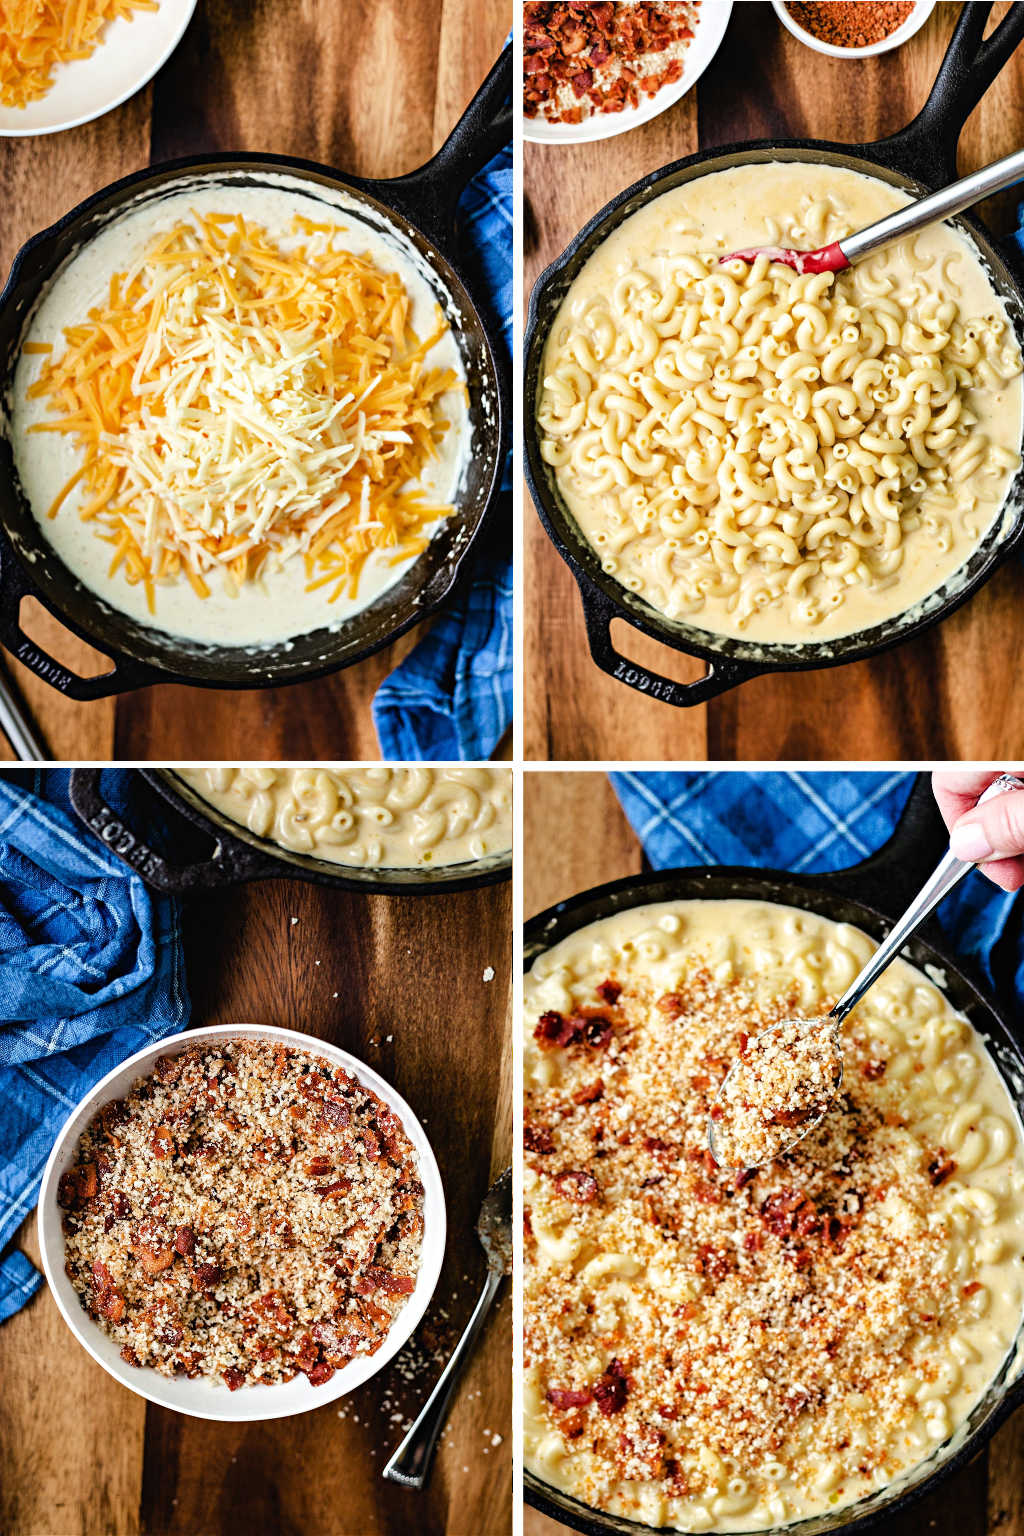 process steps for making smoked mac and cheese: 1) make cheese sauce 2) add cooked macaroni 3) make bacon crumb topping 4) spoon toping on top before cooking.